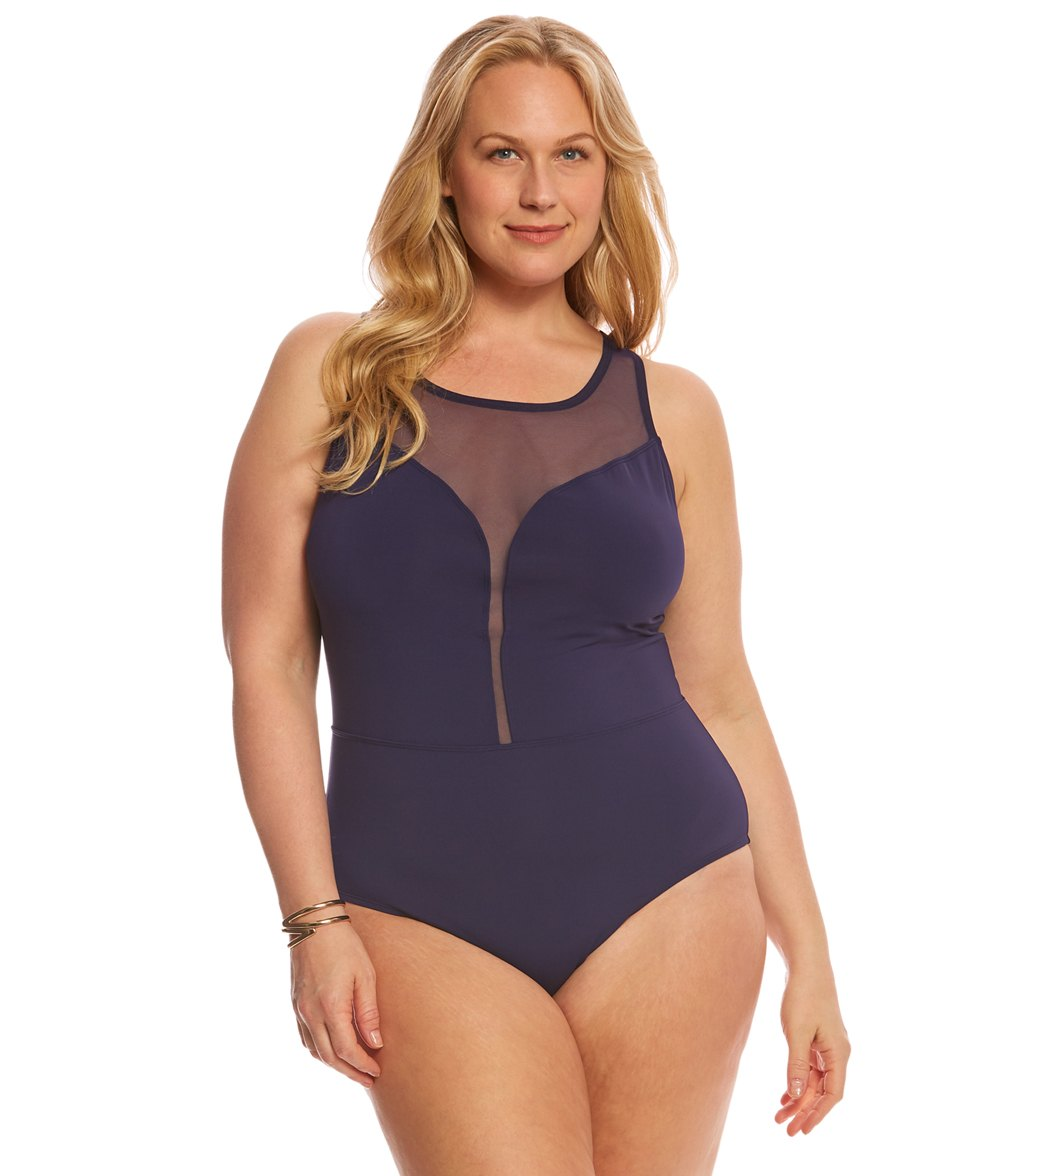 173b484f8 How to Choose Flattering Plus Size Swimwear